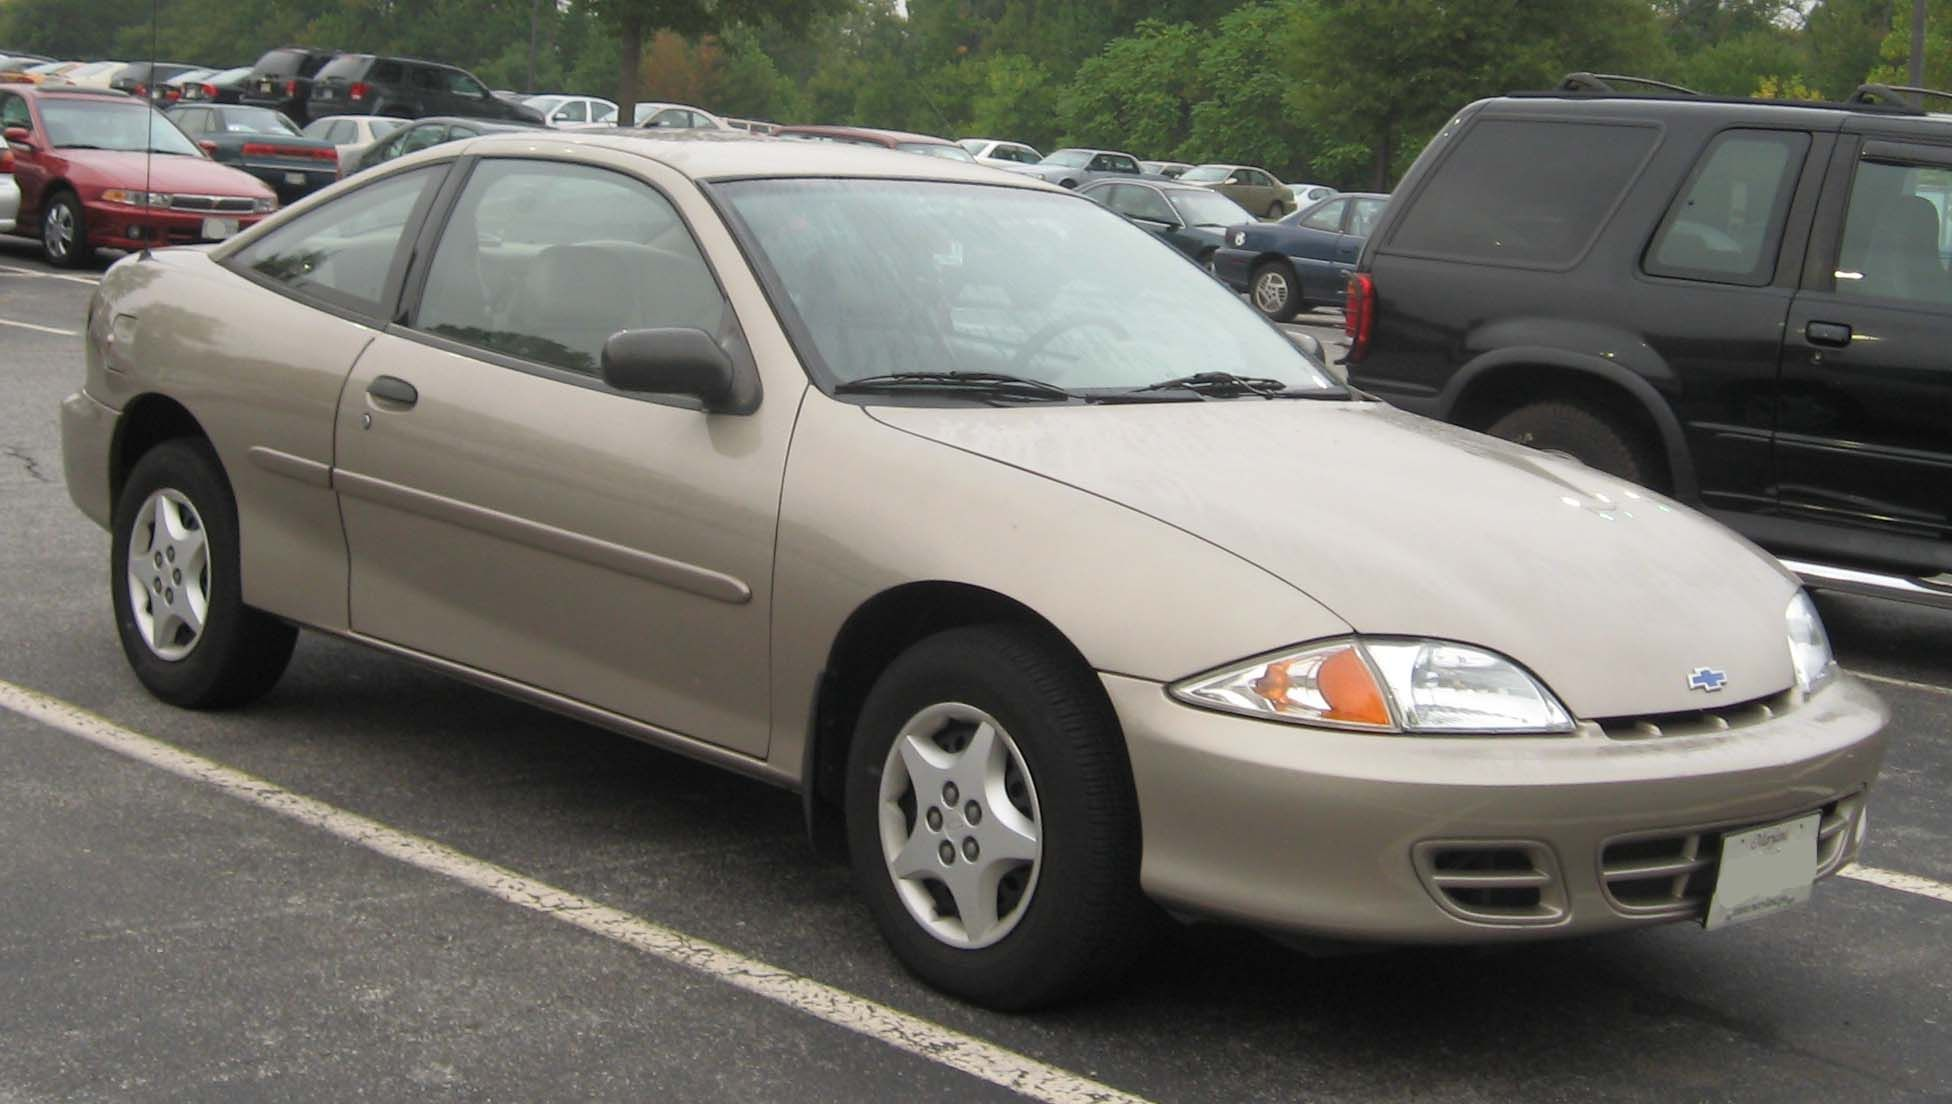 2000 Chevy Cavalier First Vehicle I Owned I Actually Had To Pay